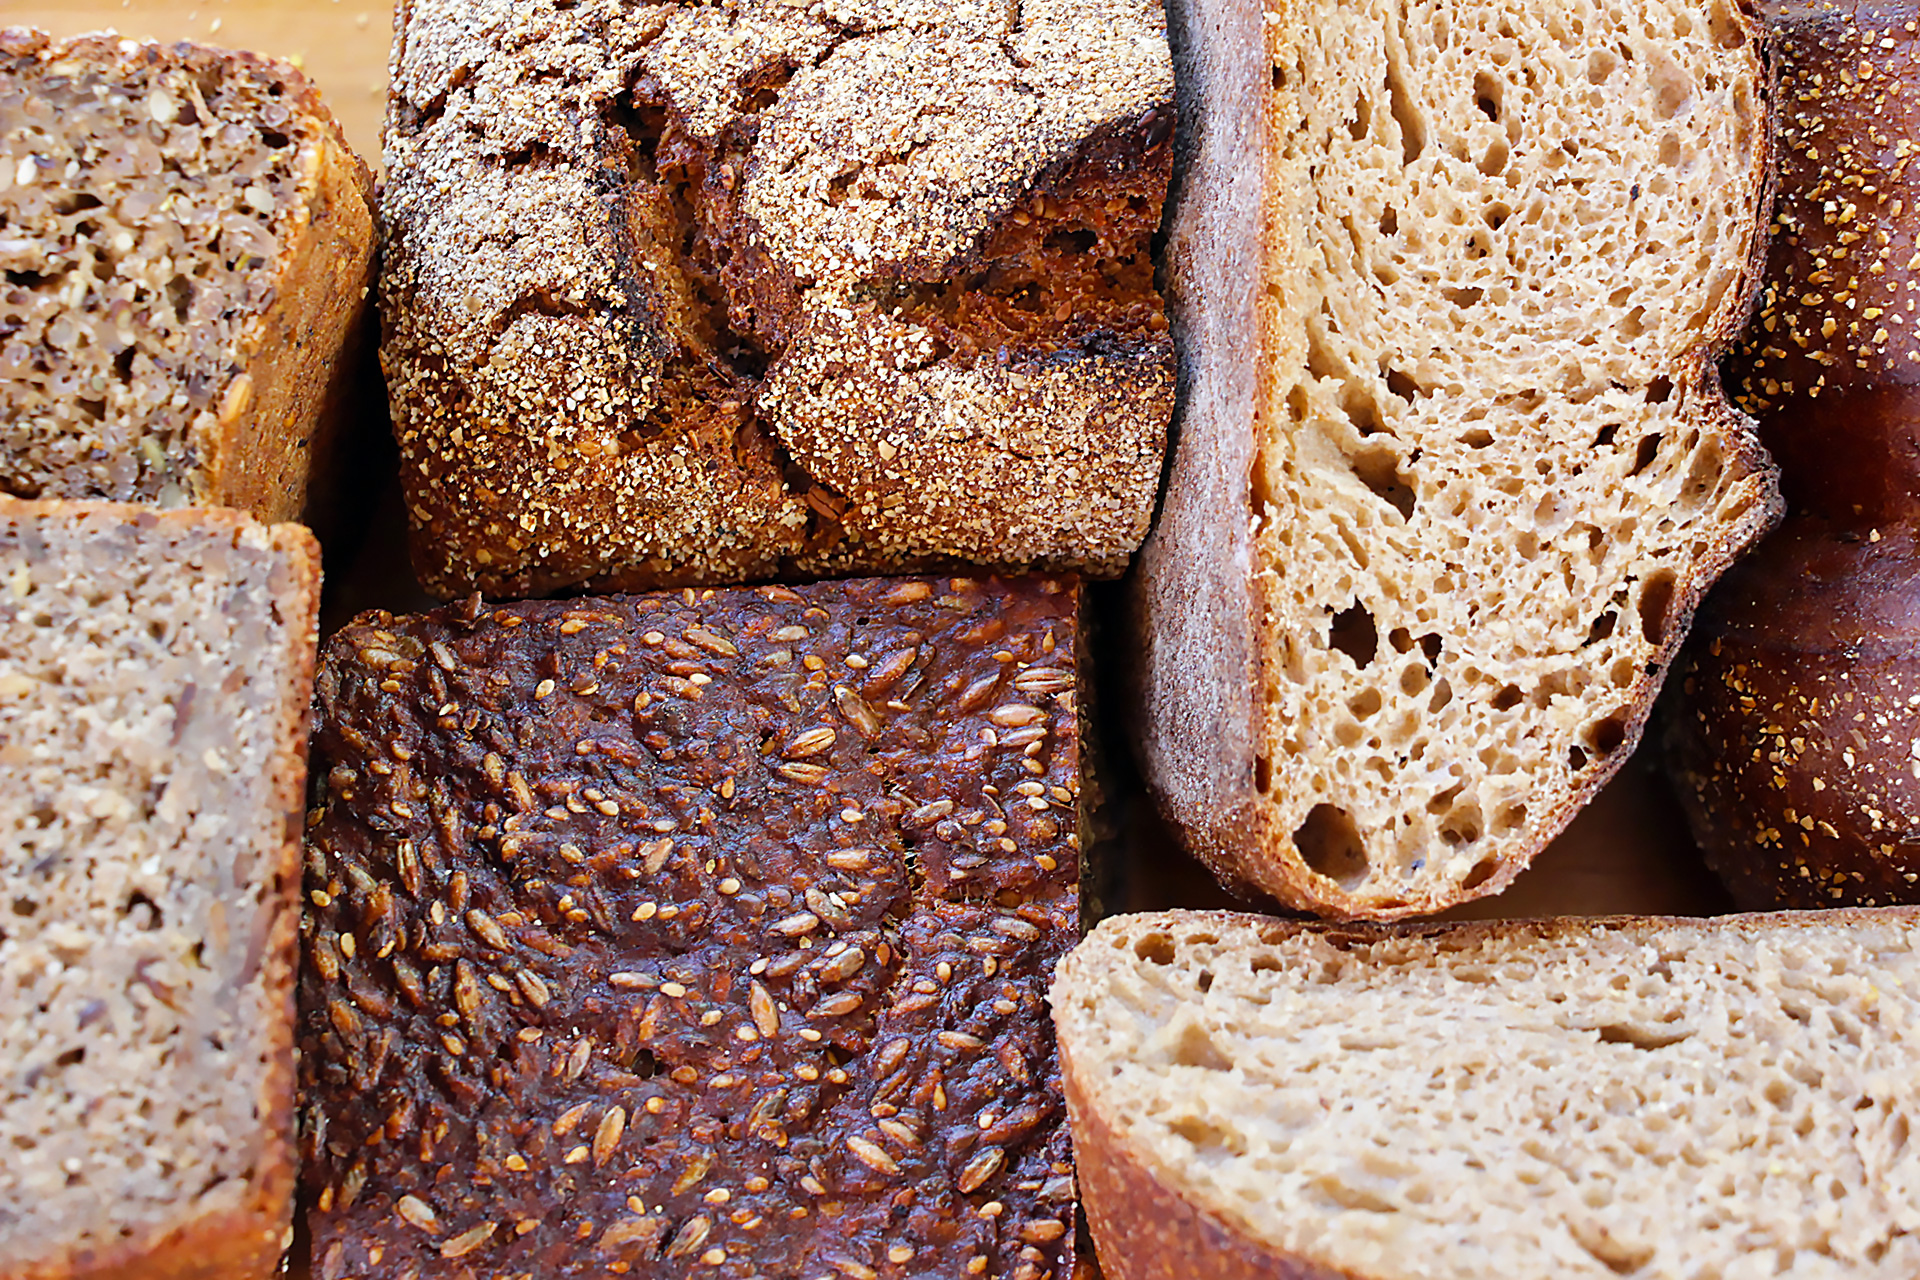 The interiors exposed of rye breads from San Francisco bakeries.